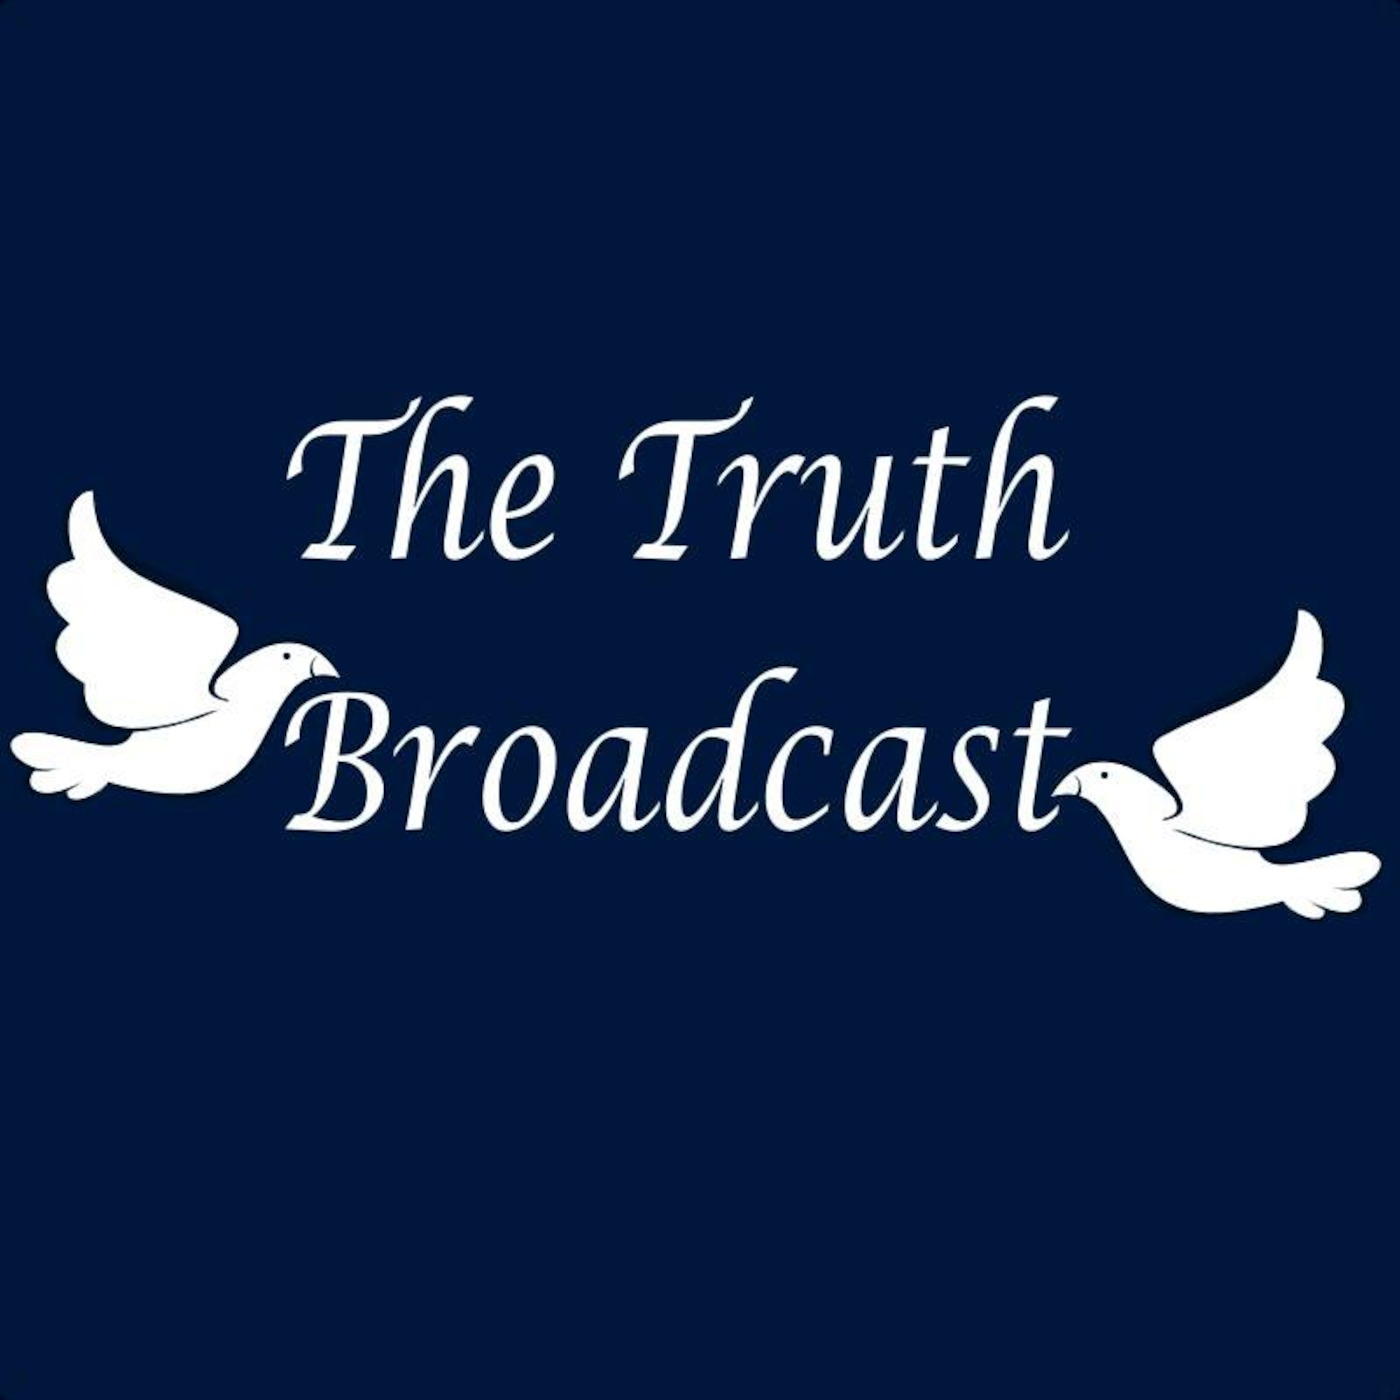 The Truth Broadcast